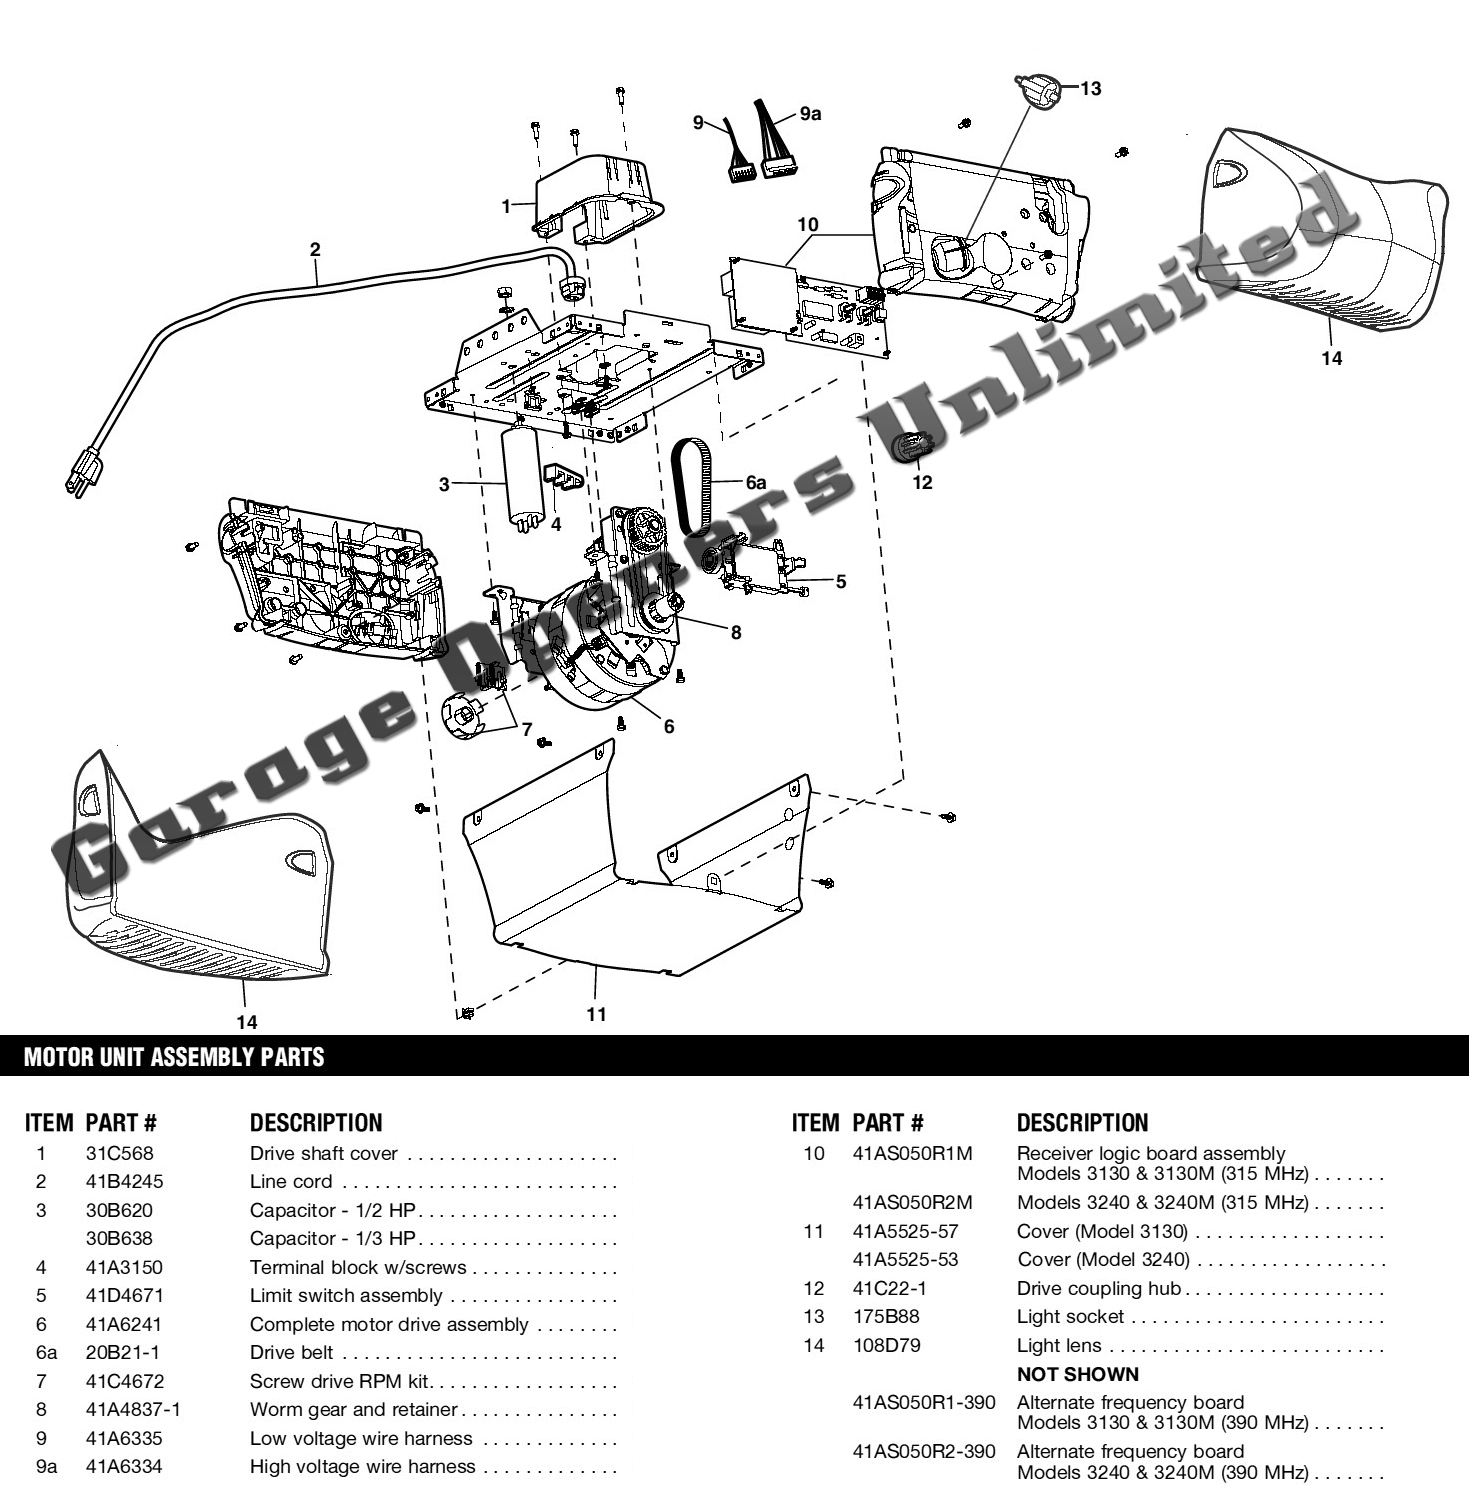 Liftmaster garage door opener parts diagram automotive for What size garage door opener